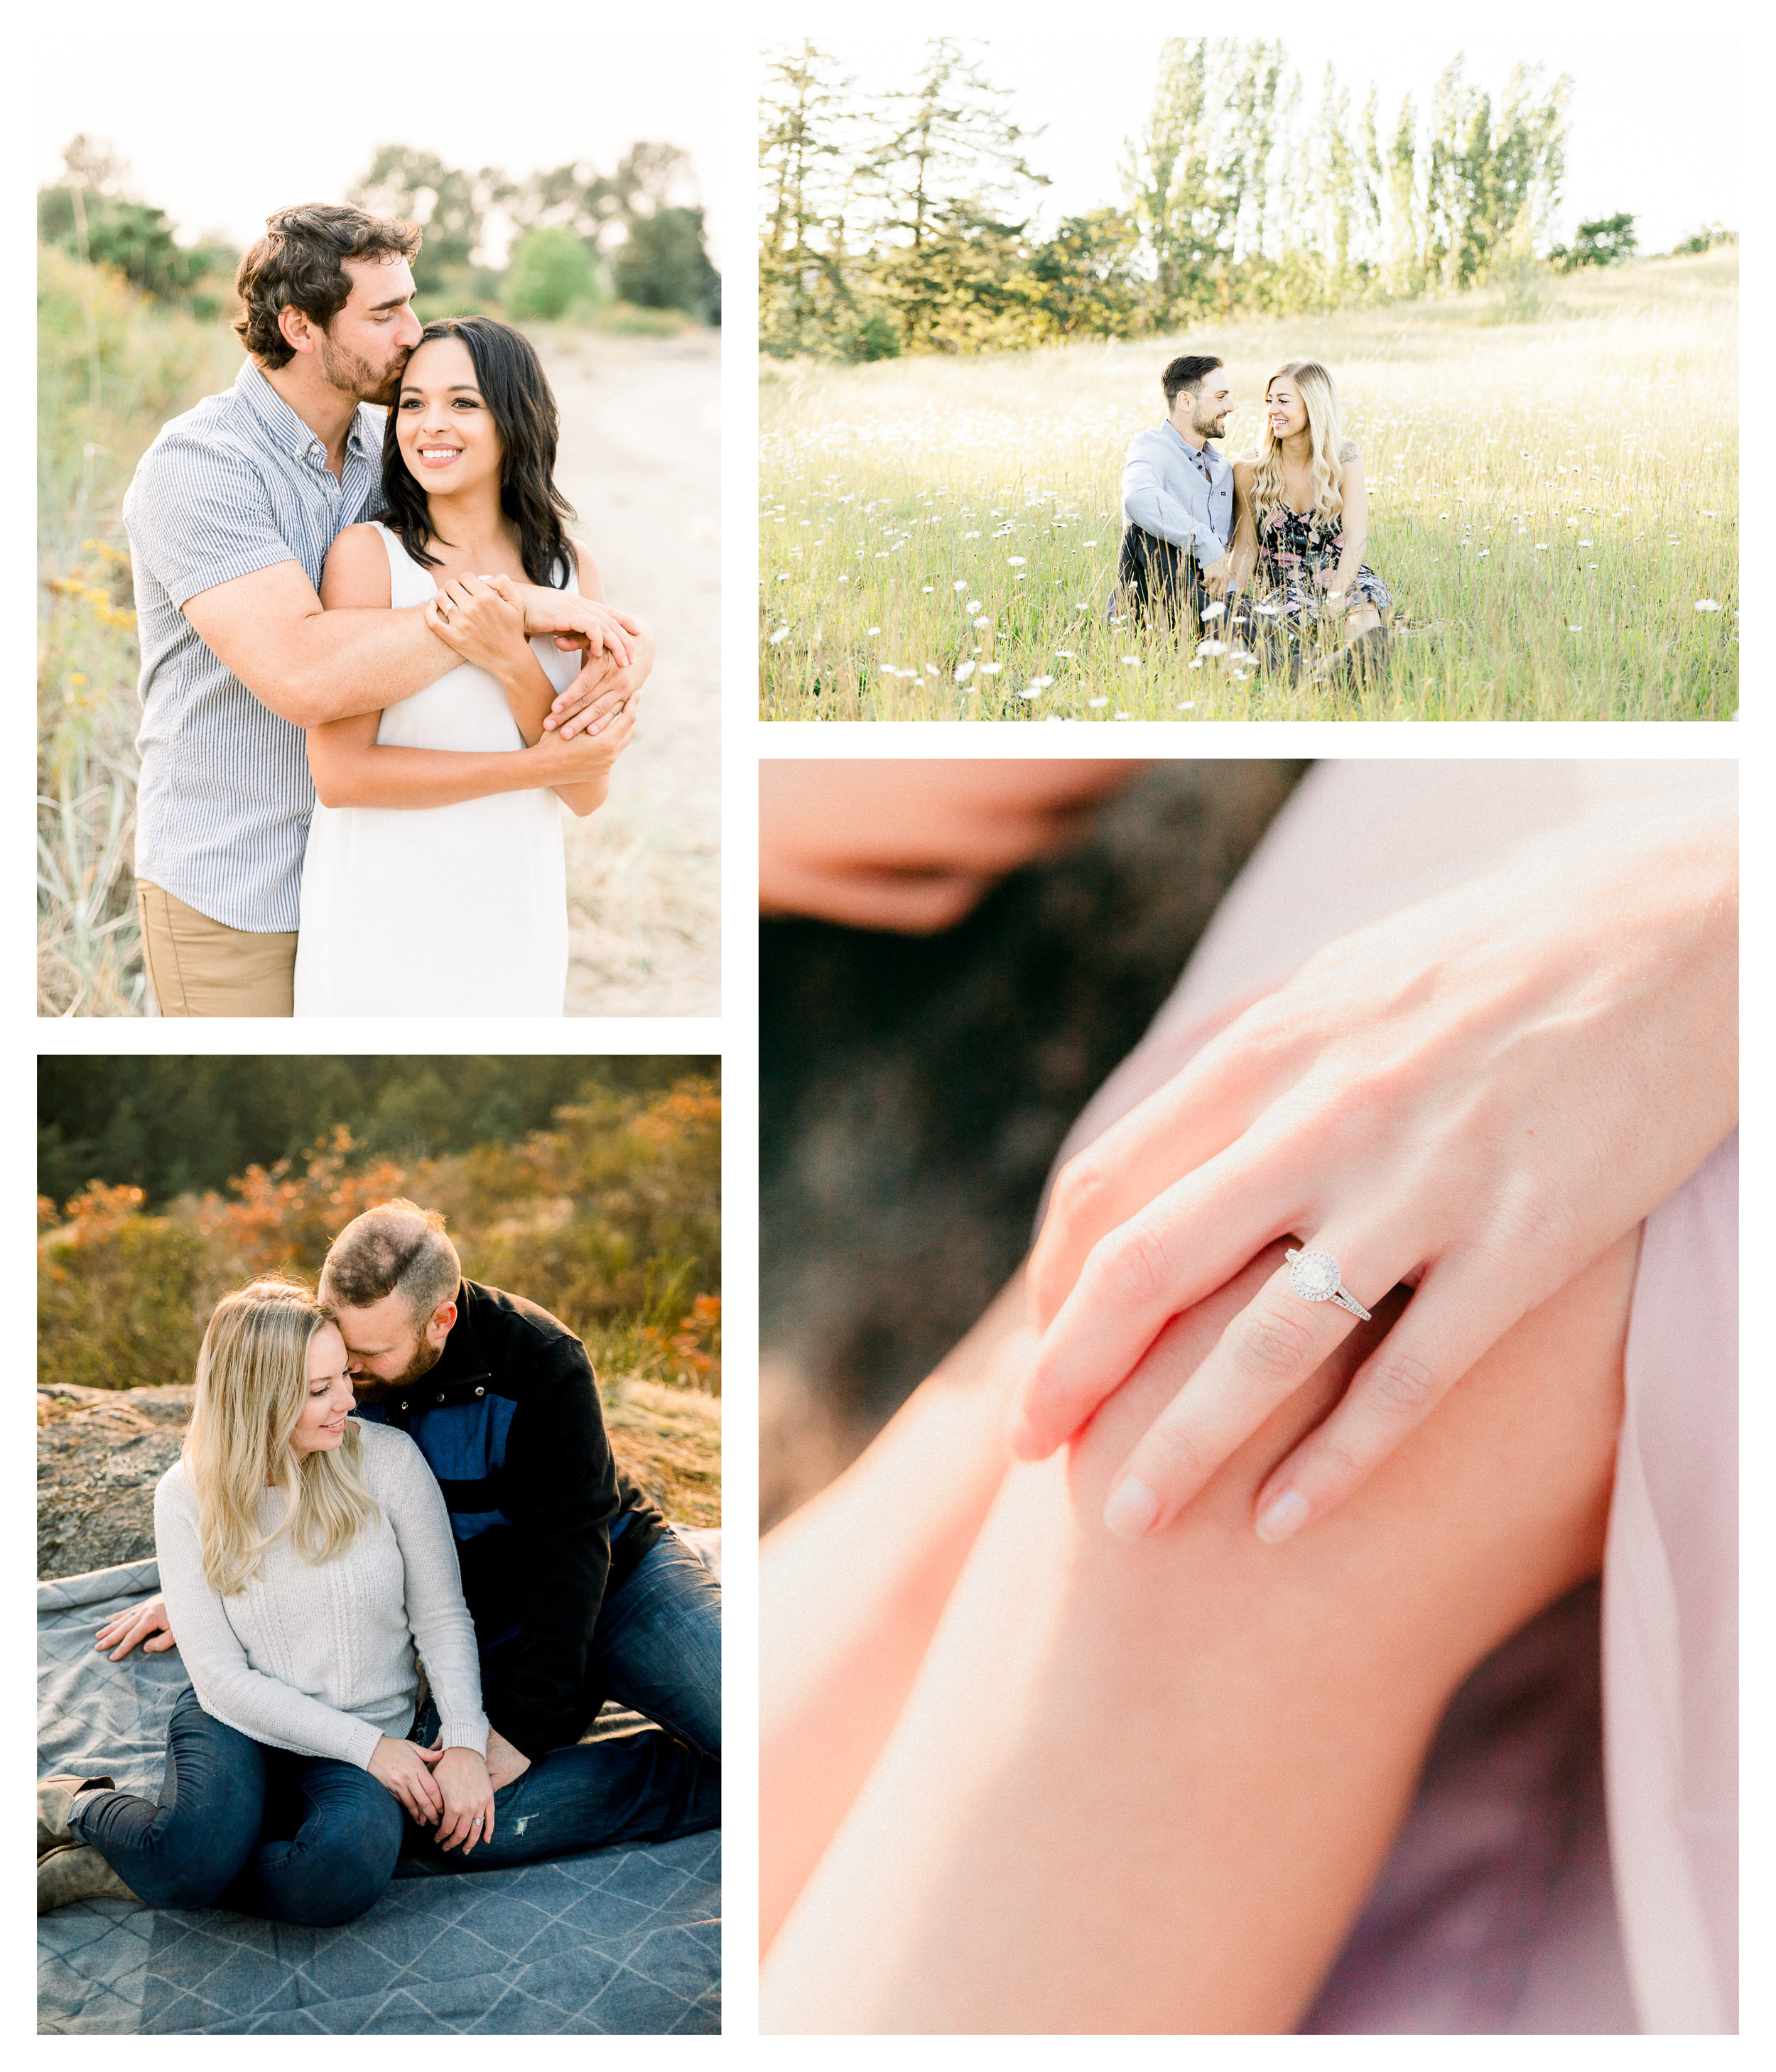 Victoria-Engagement-Photographer-2.jpg